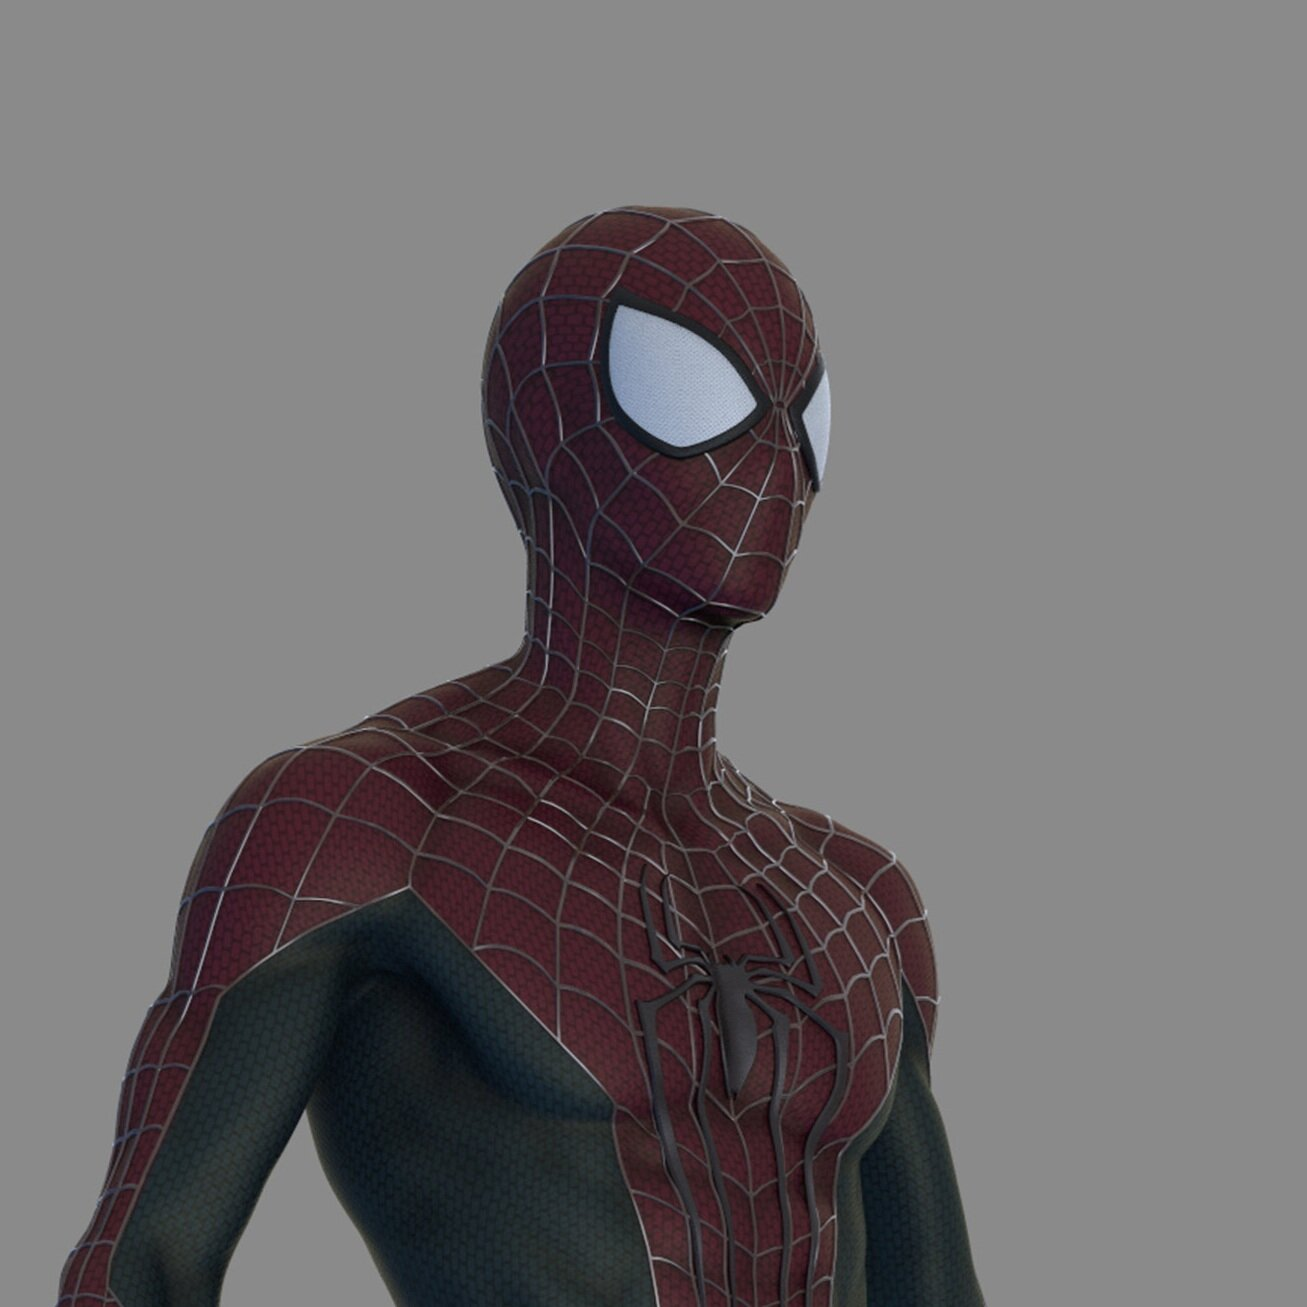 Copy of The Amazing Spider-Man 2